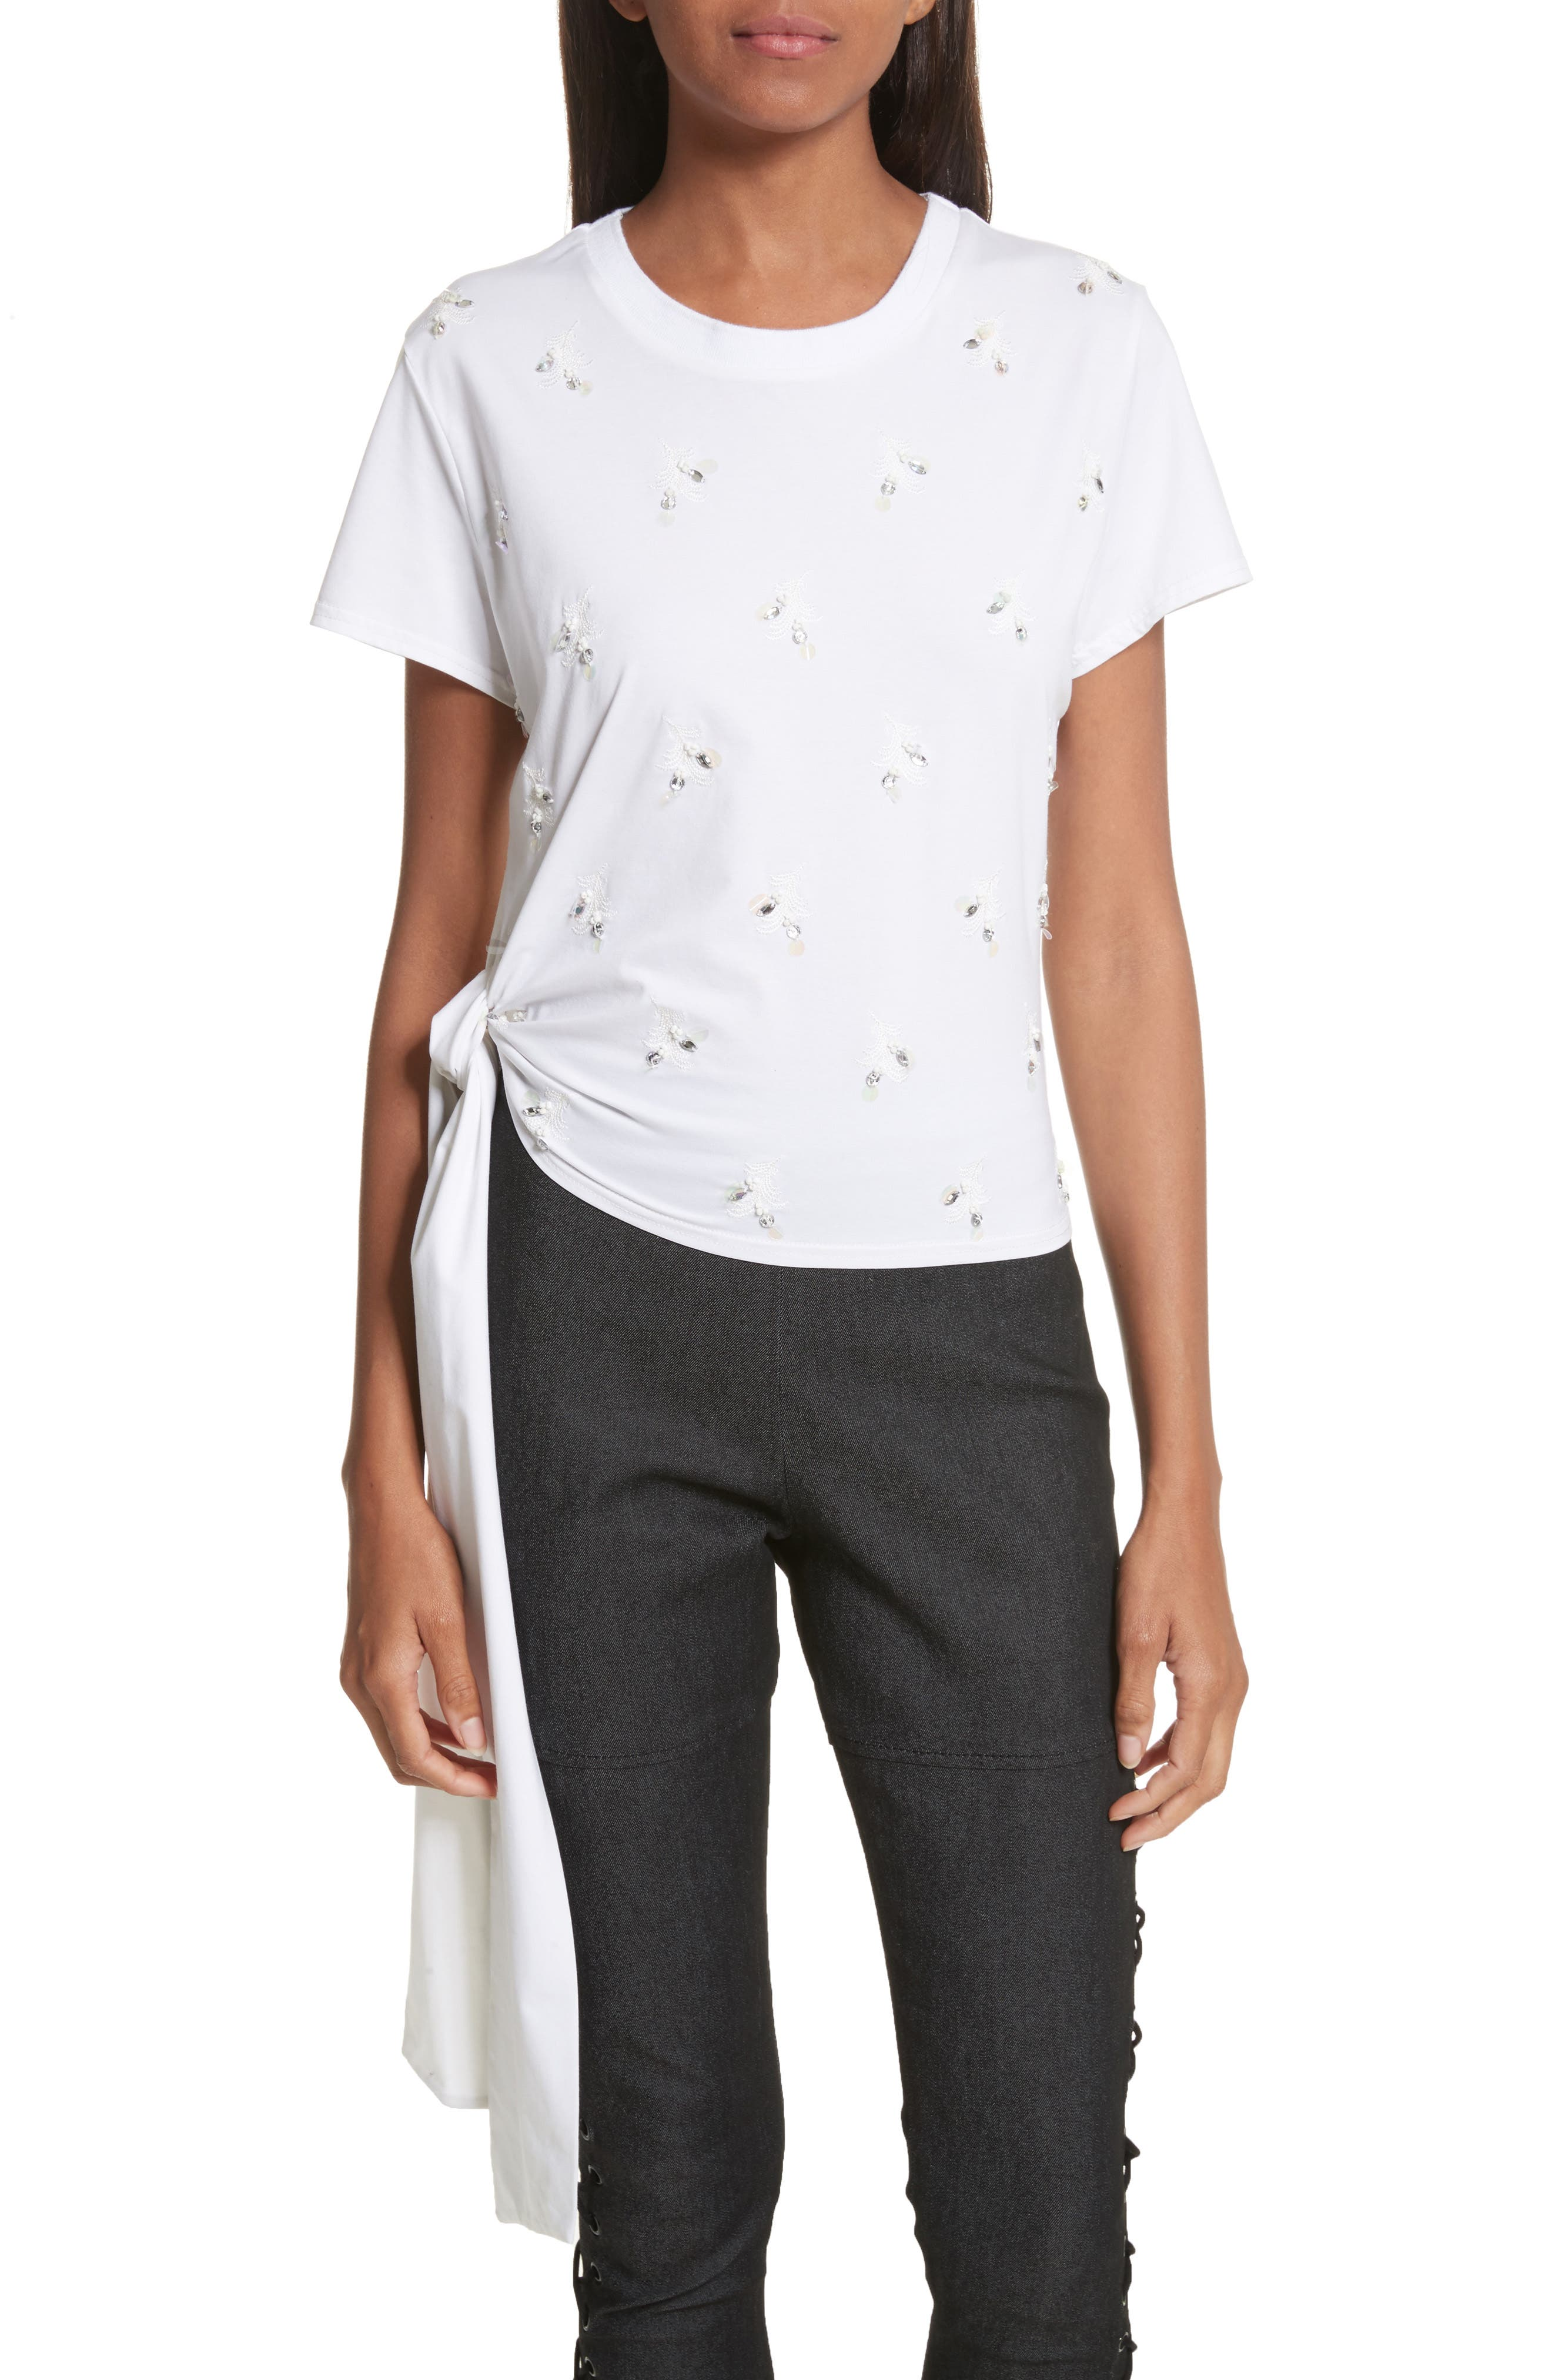 Scout Top,                         Main,                         color, White/ White